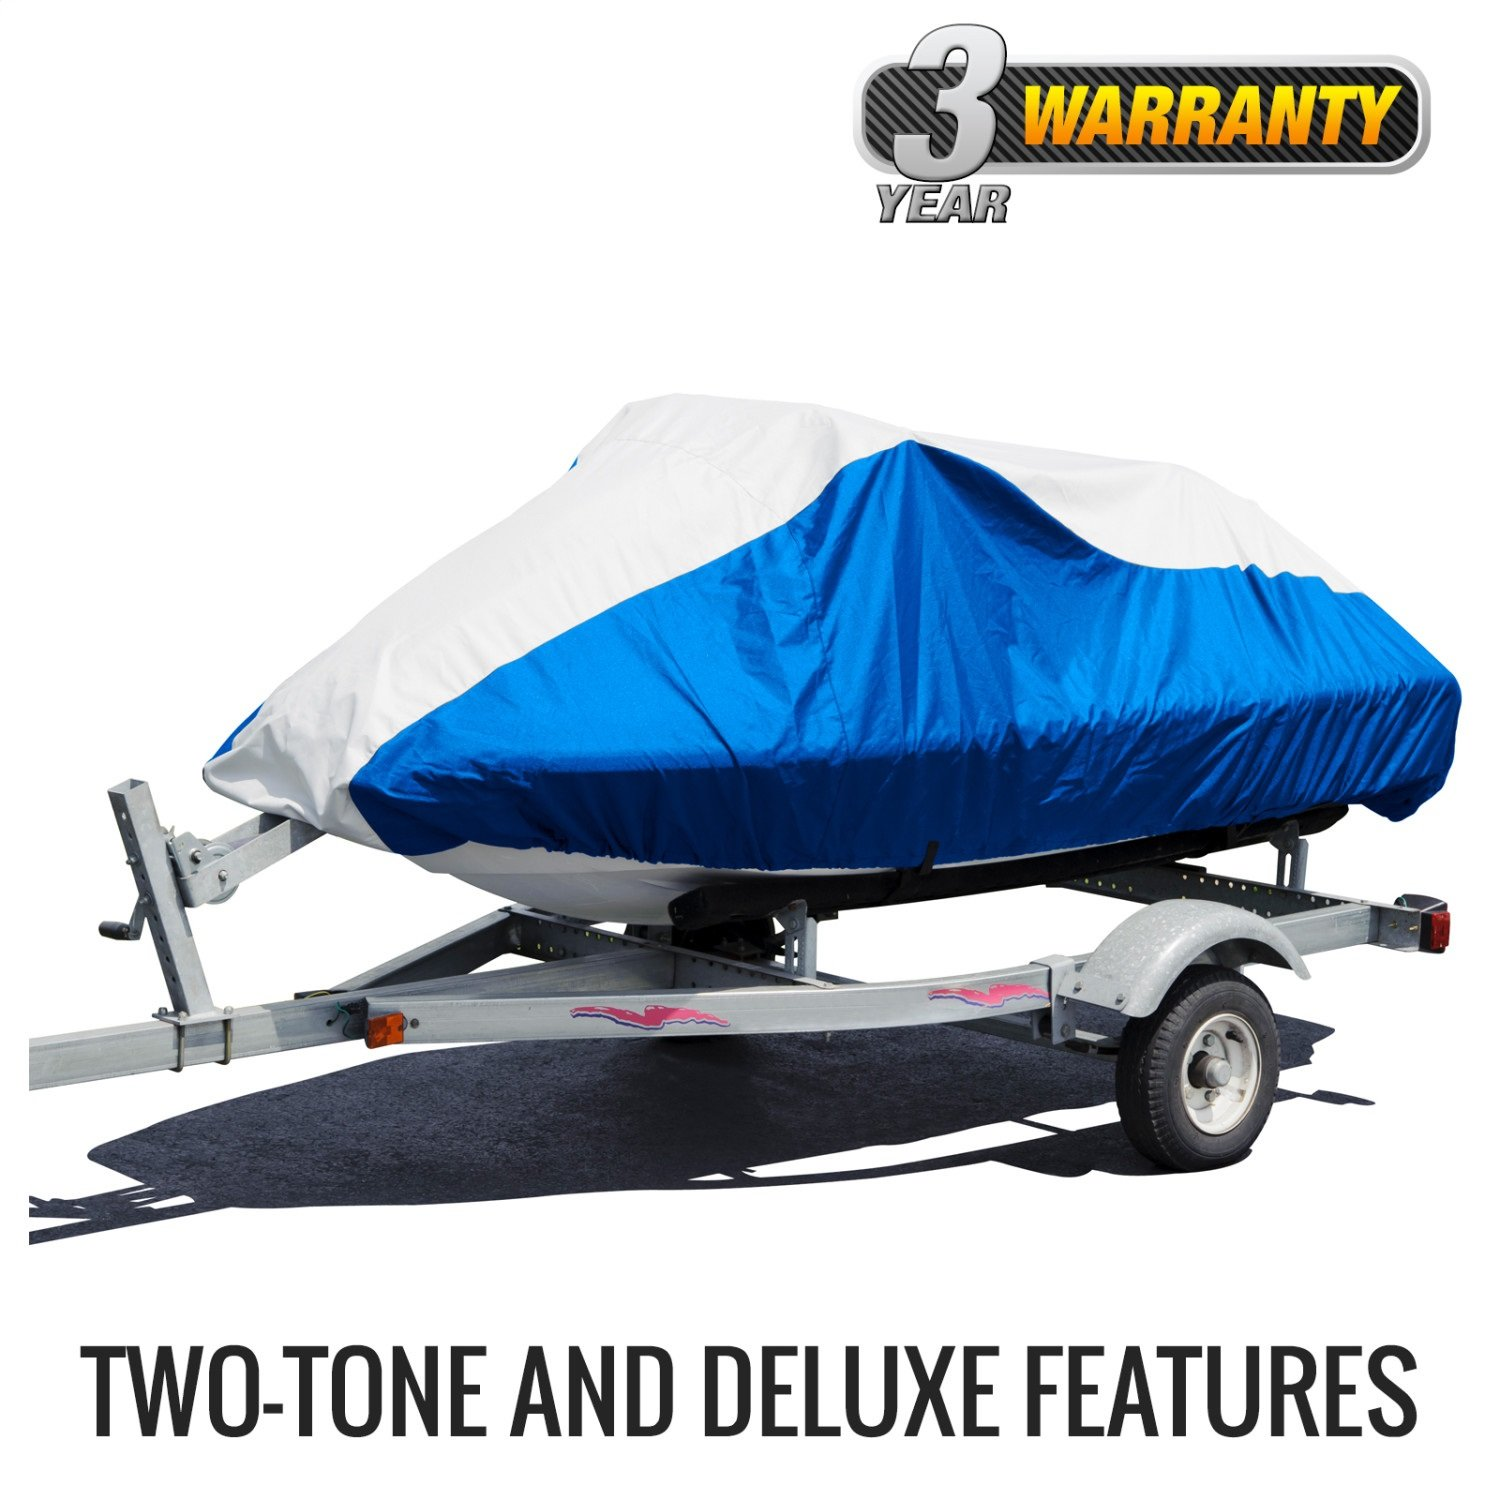 Budge Deluxe Jet Ski Cover Fits Jet Skis 121'' to 135'' Long, Blue/Gray